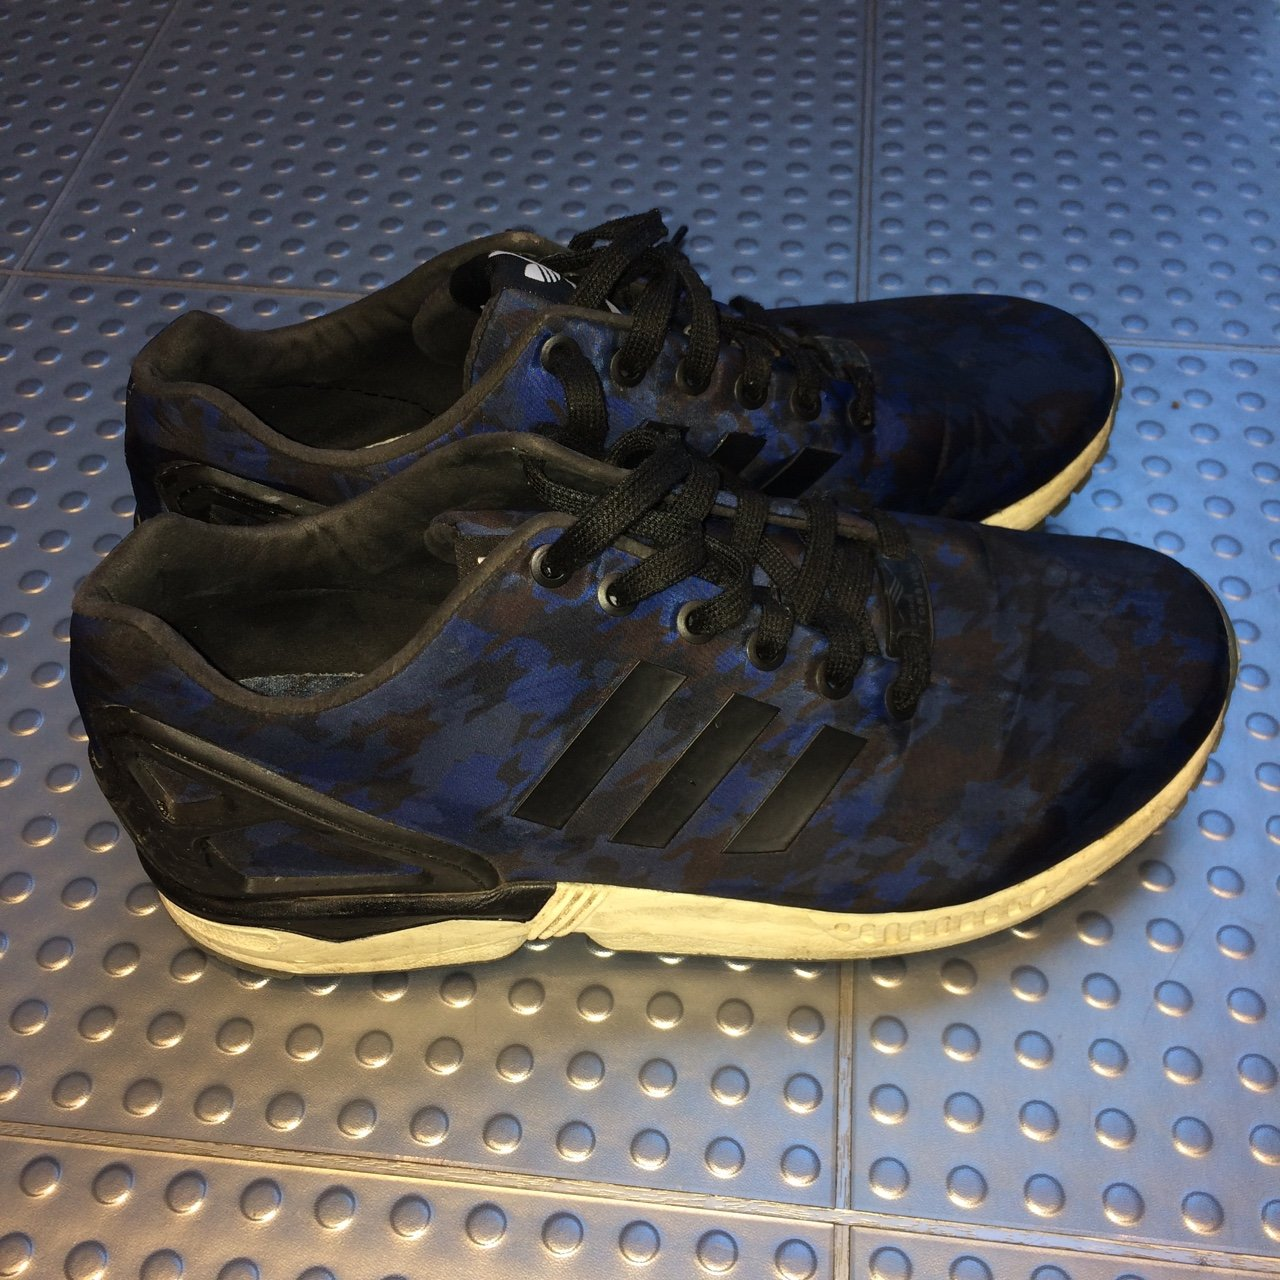 acea8578aaeae Adidas blue and black ZX Flux trainers